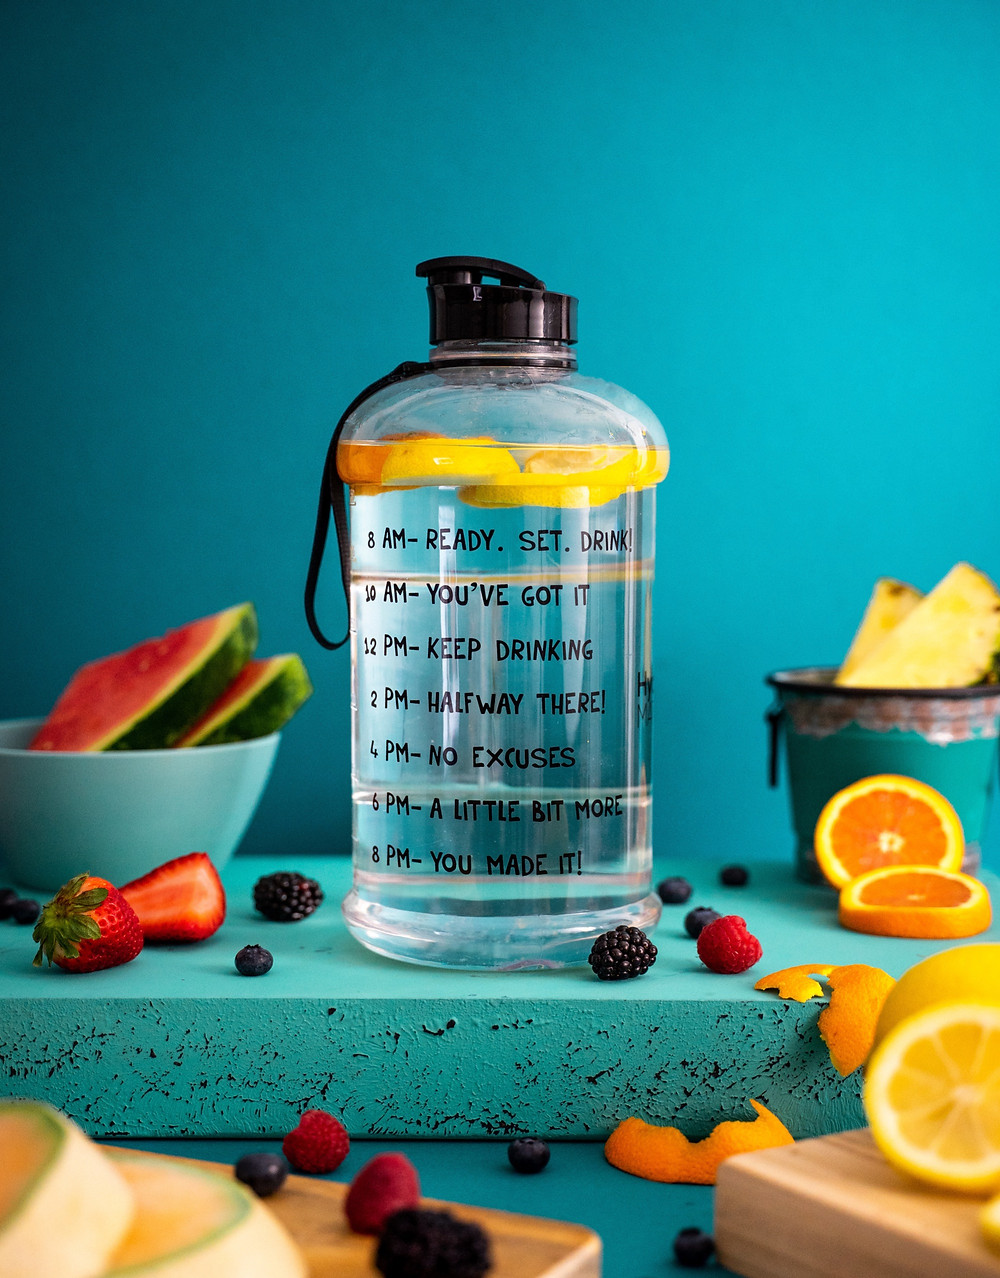 A bottle full of water and slices of fruit